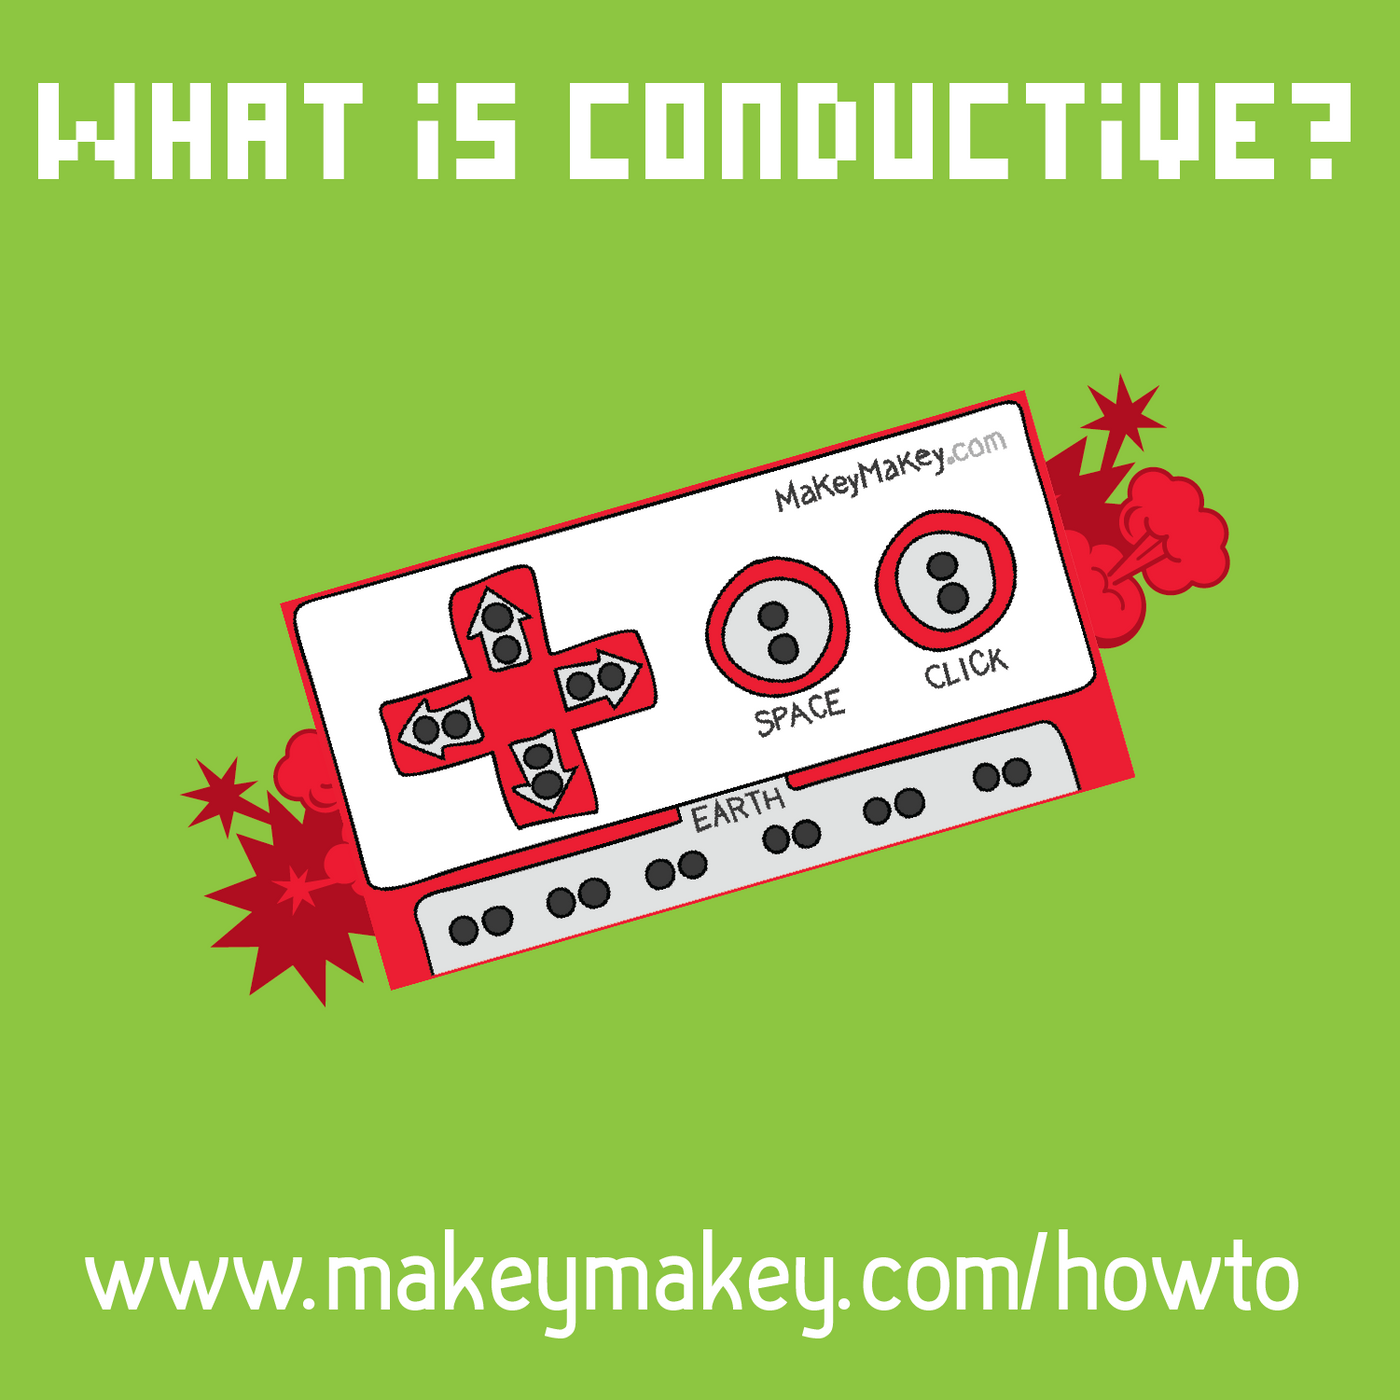 Lesson Three: What is Conductive?